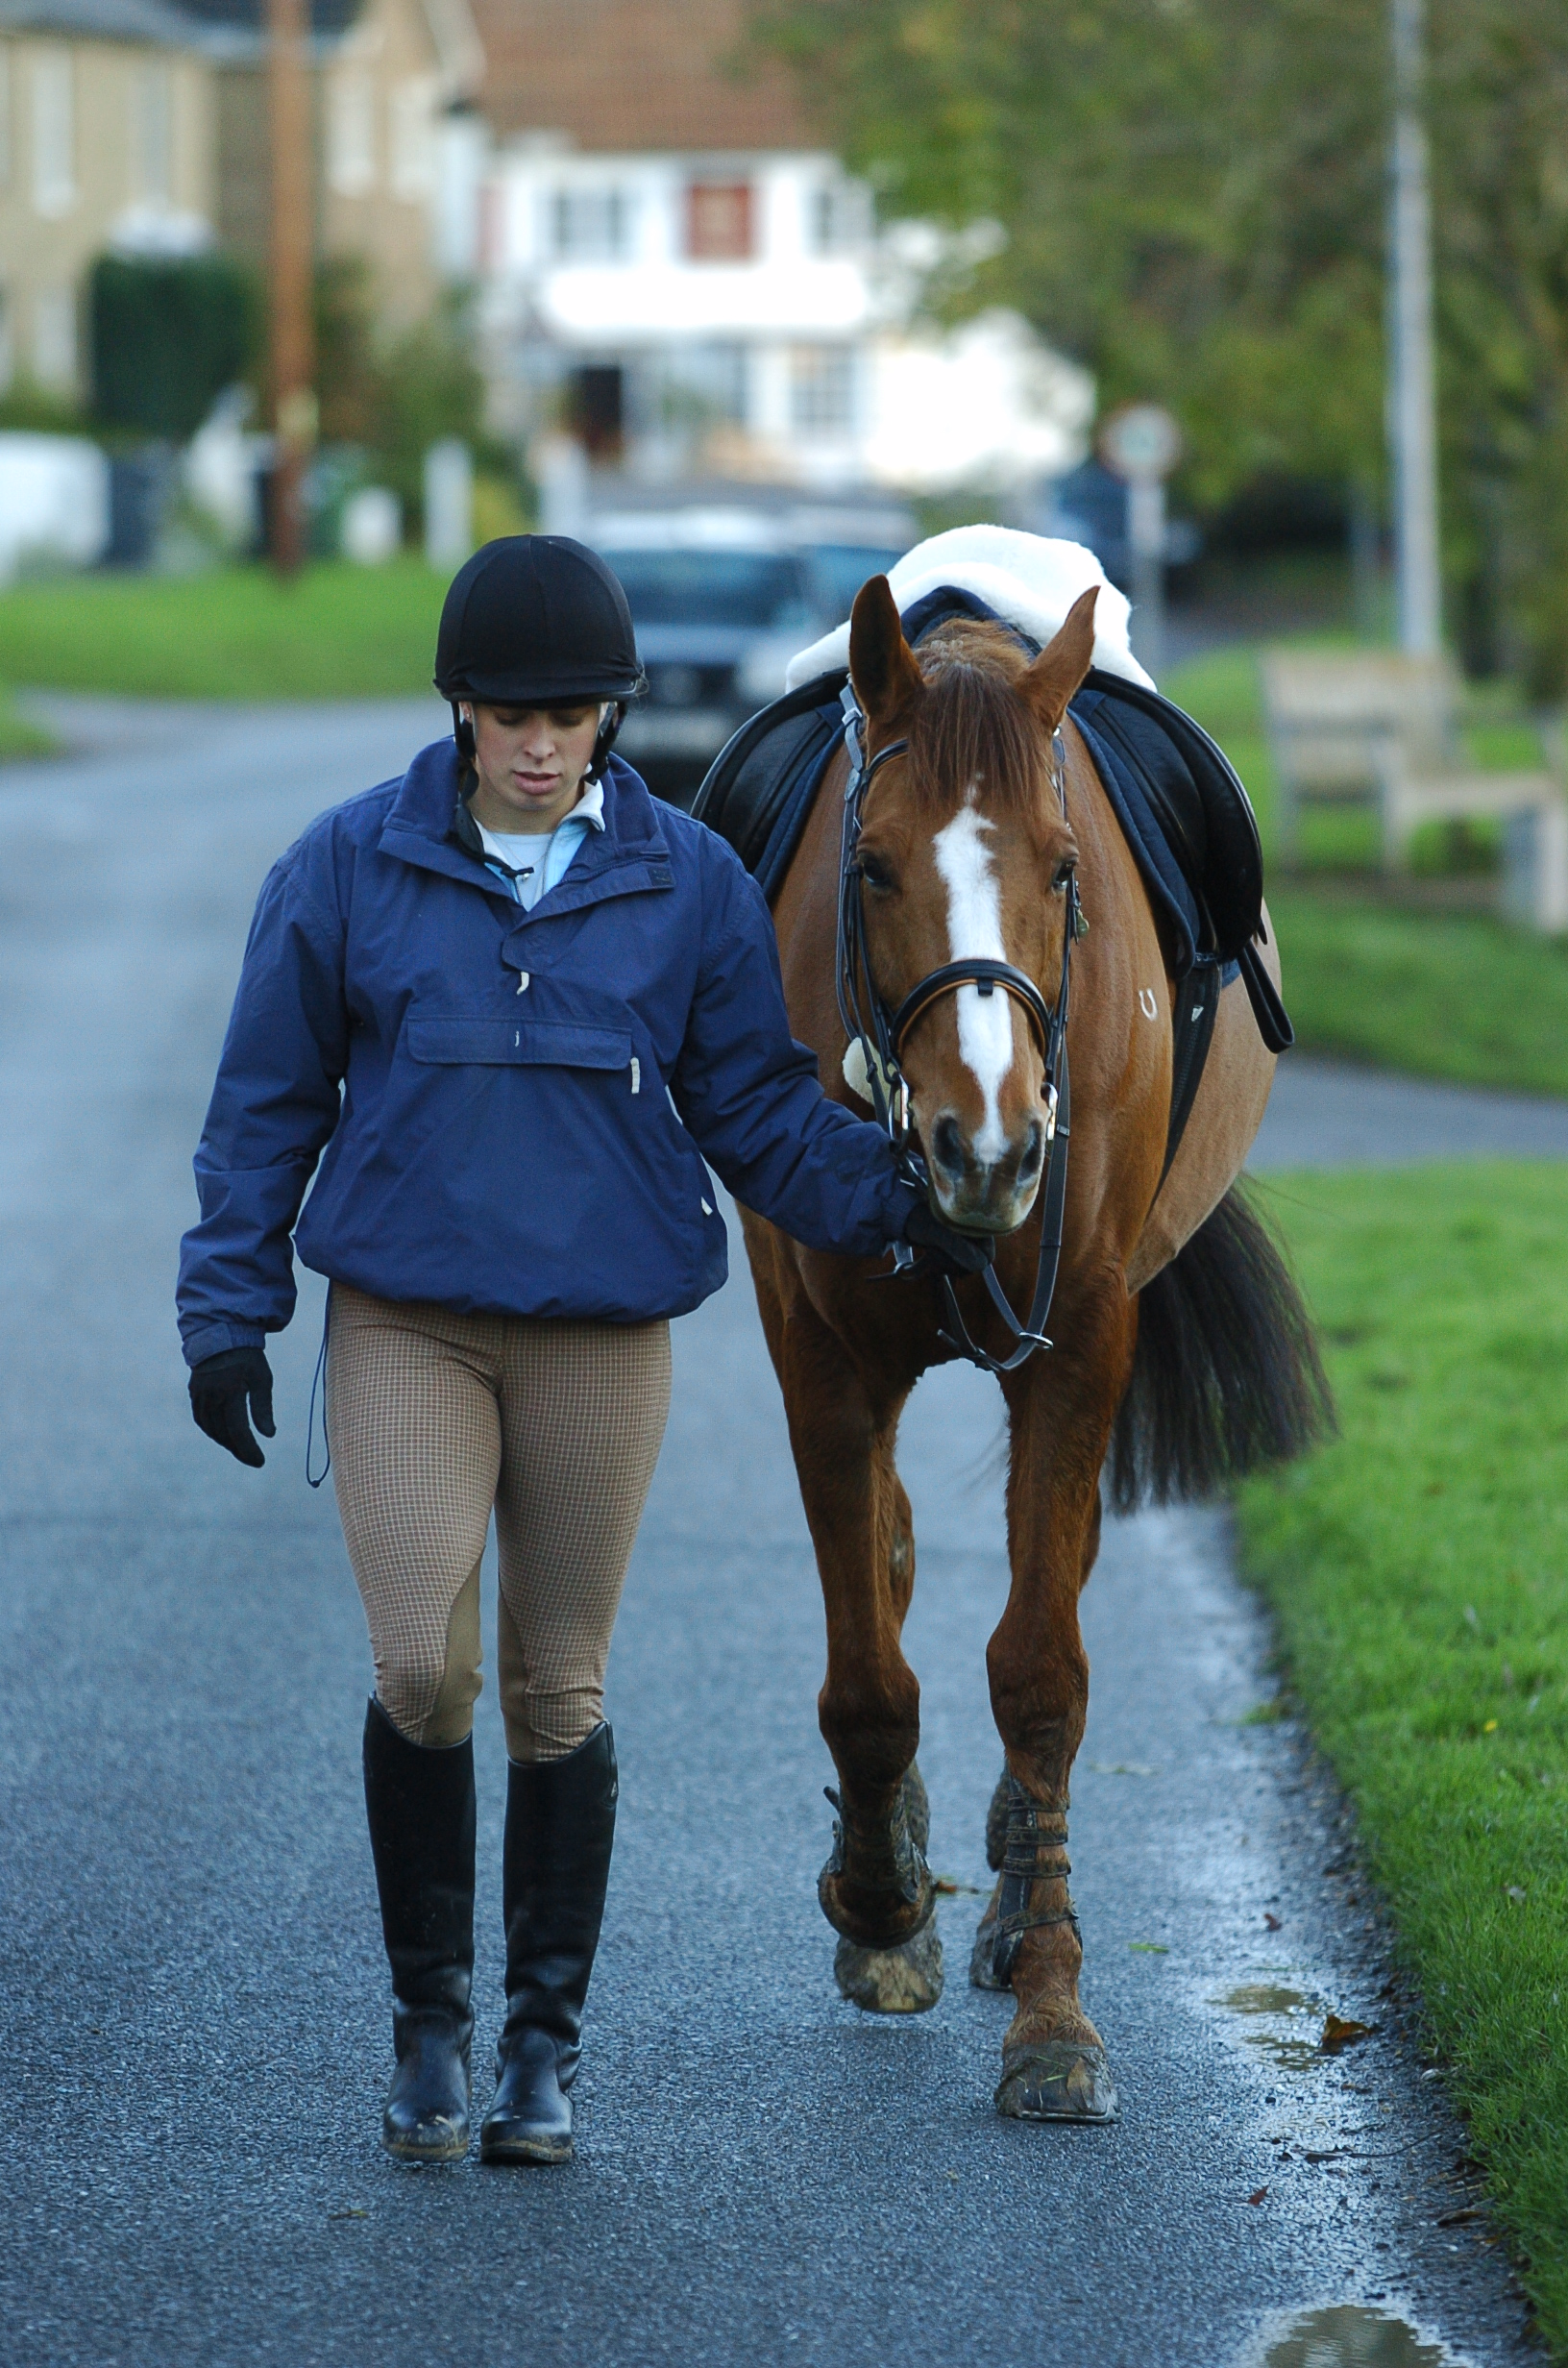 Sometimes, getting off to lead a napping horse can be the most sensible option